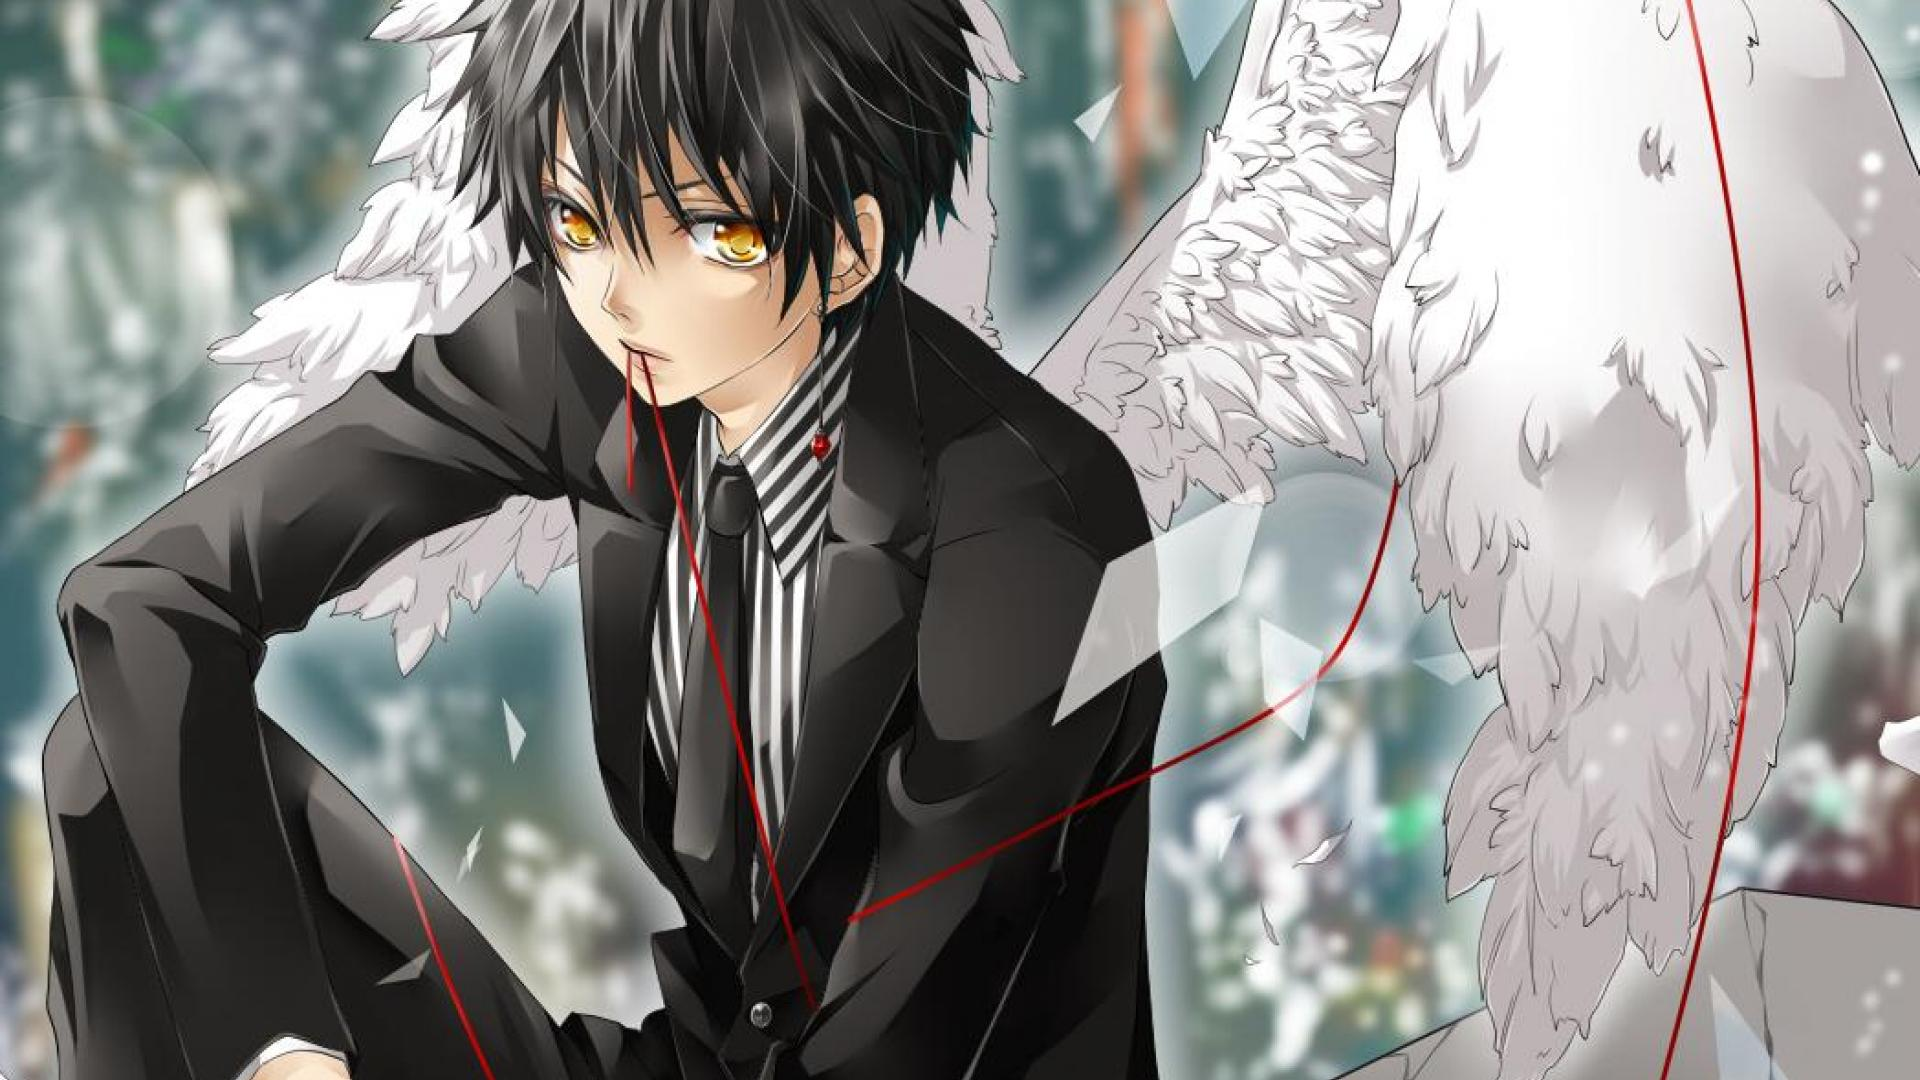 Boy anime wallpapers wallpaper cave - Anime guy wallpaper ...